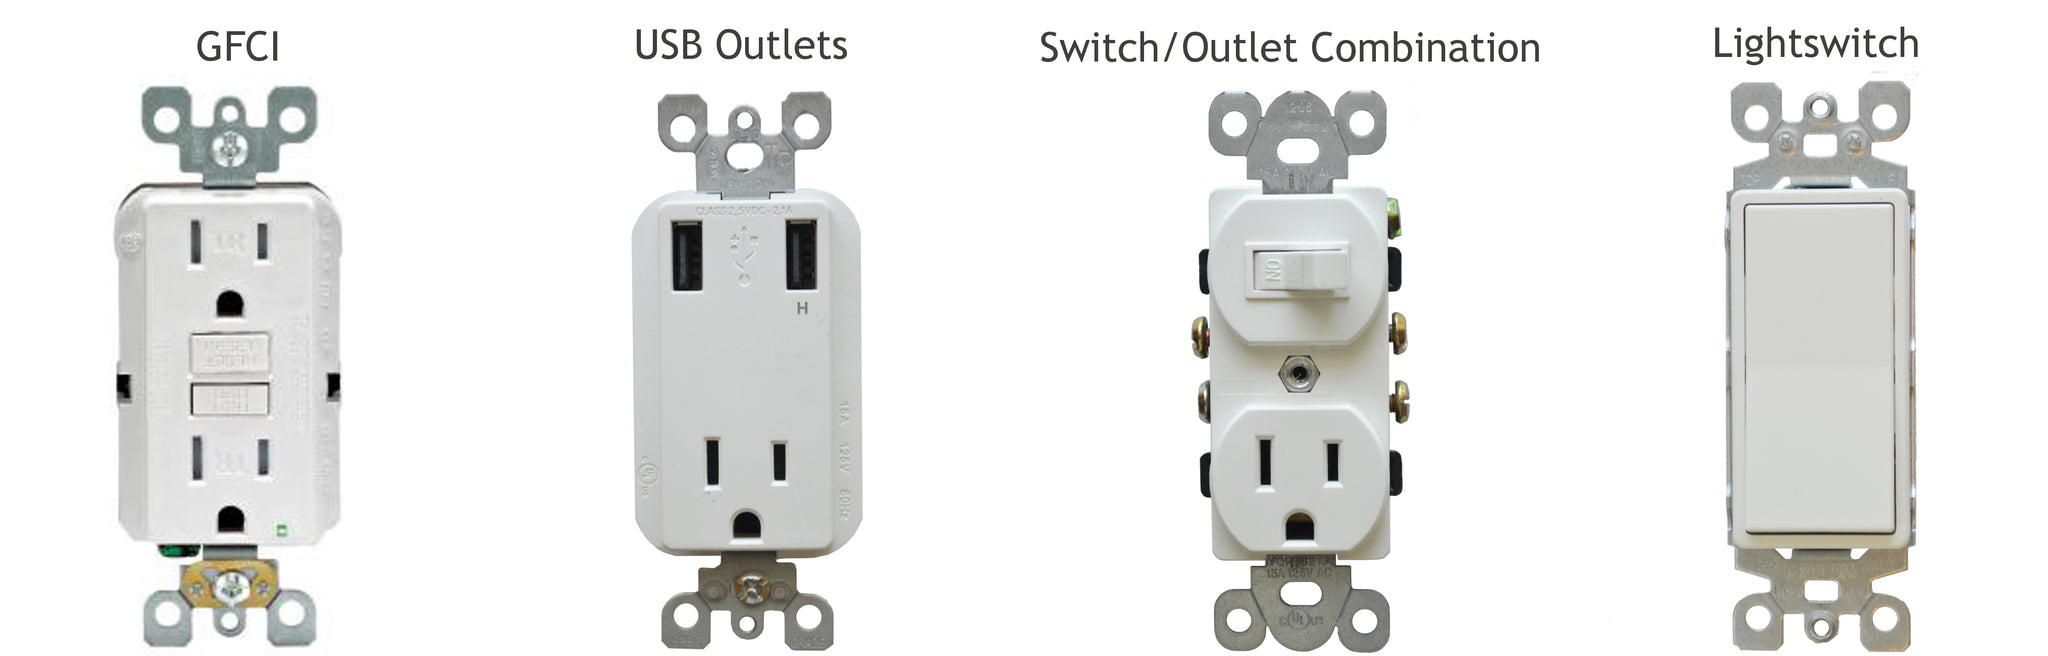 Install And Troubleshooting 1 Snappower Wiring A Light Switch From Receptacle Duplex Outlet With No Screw Terminals